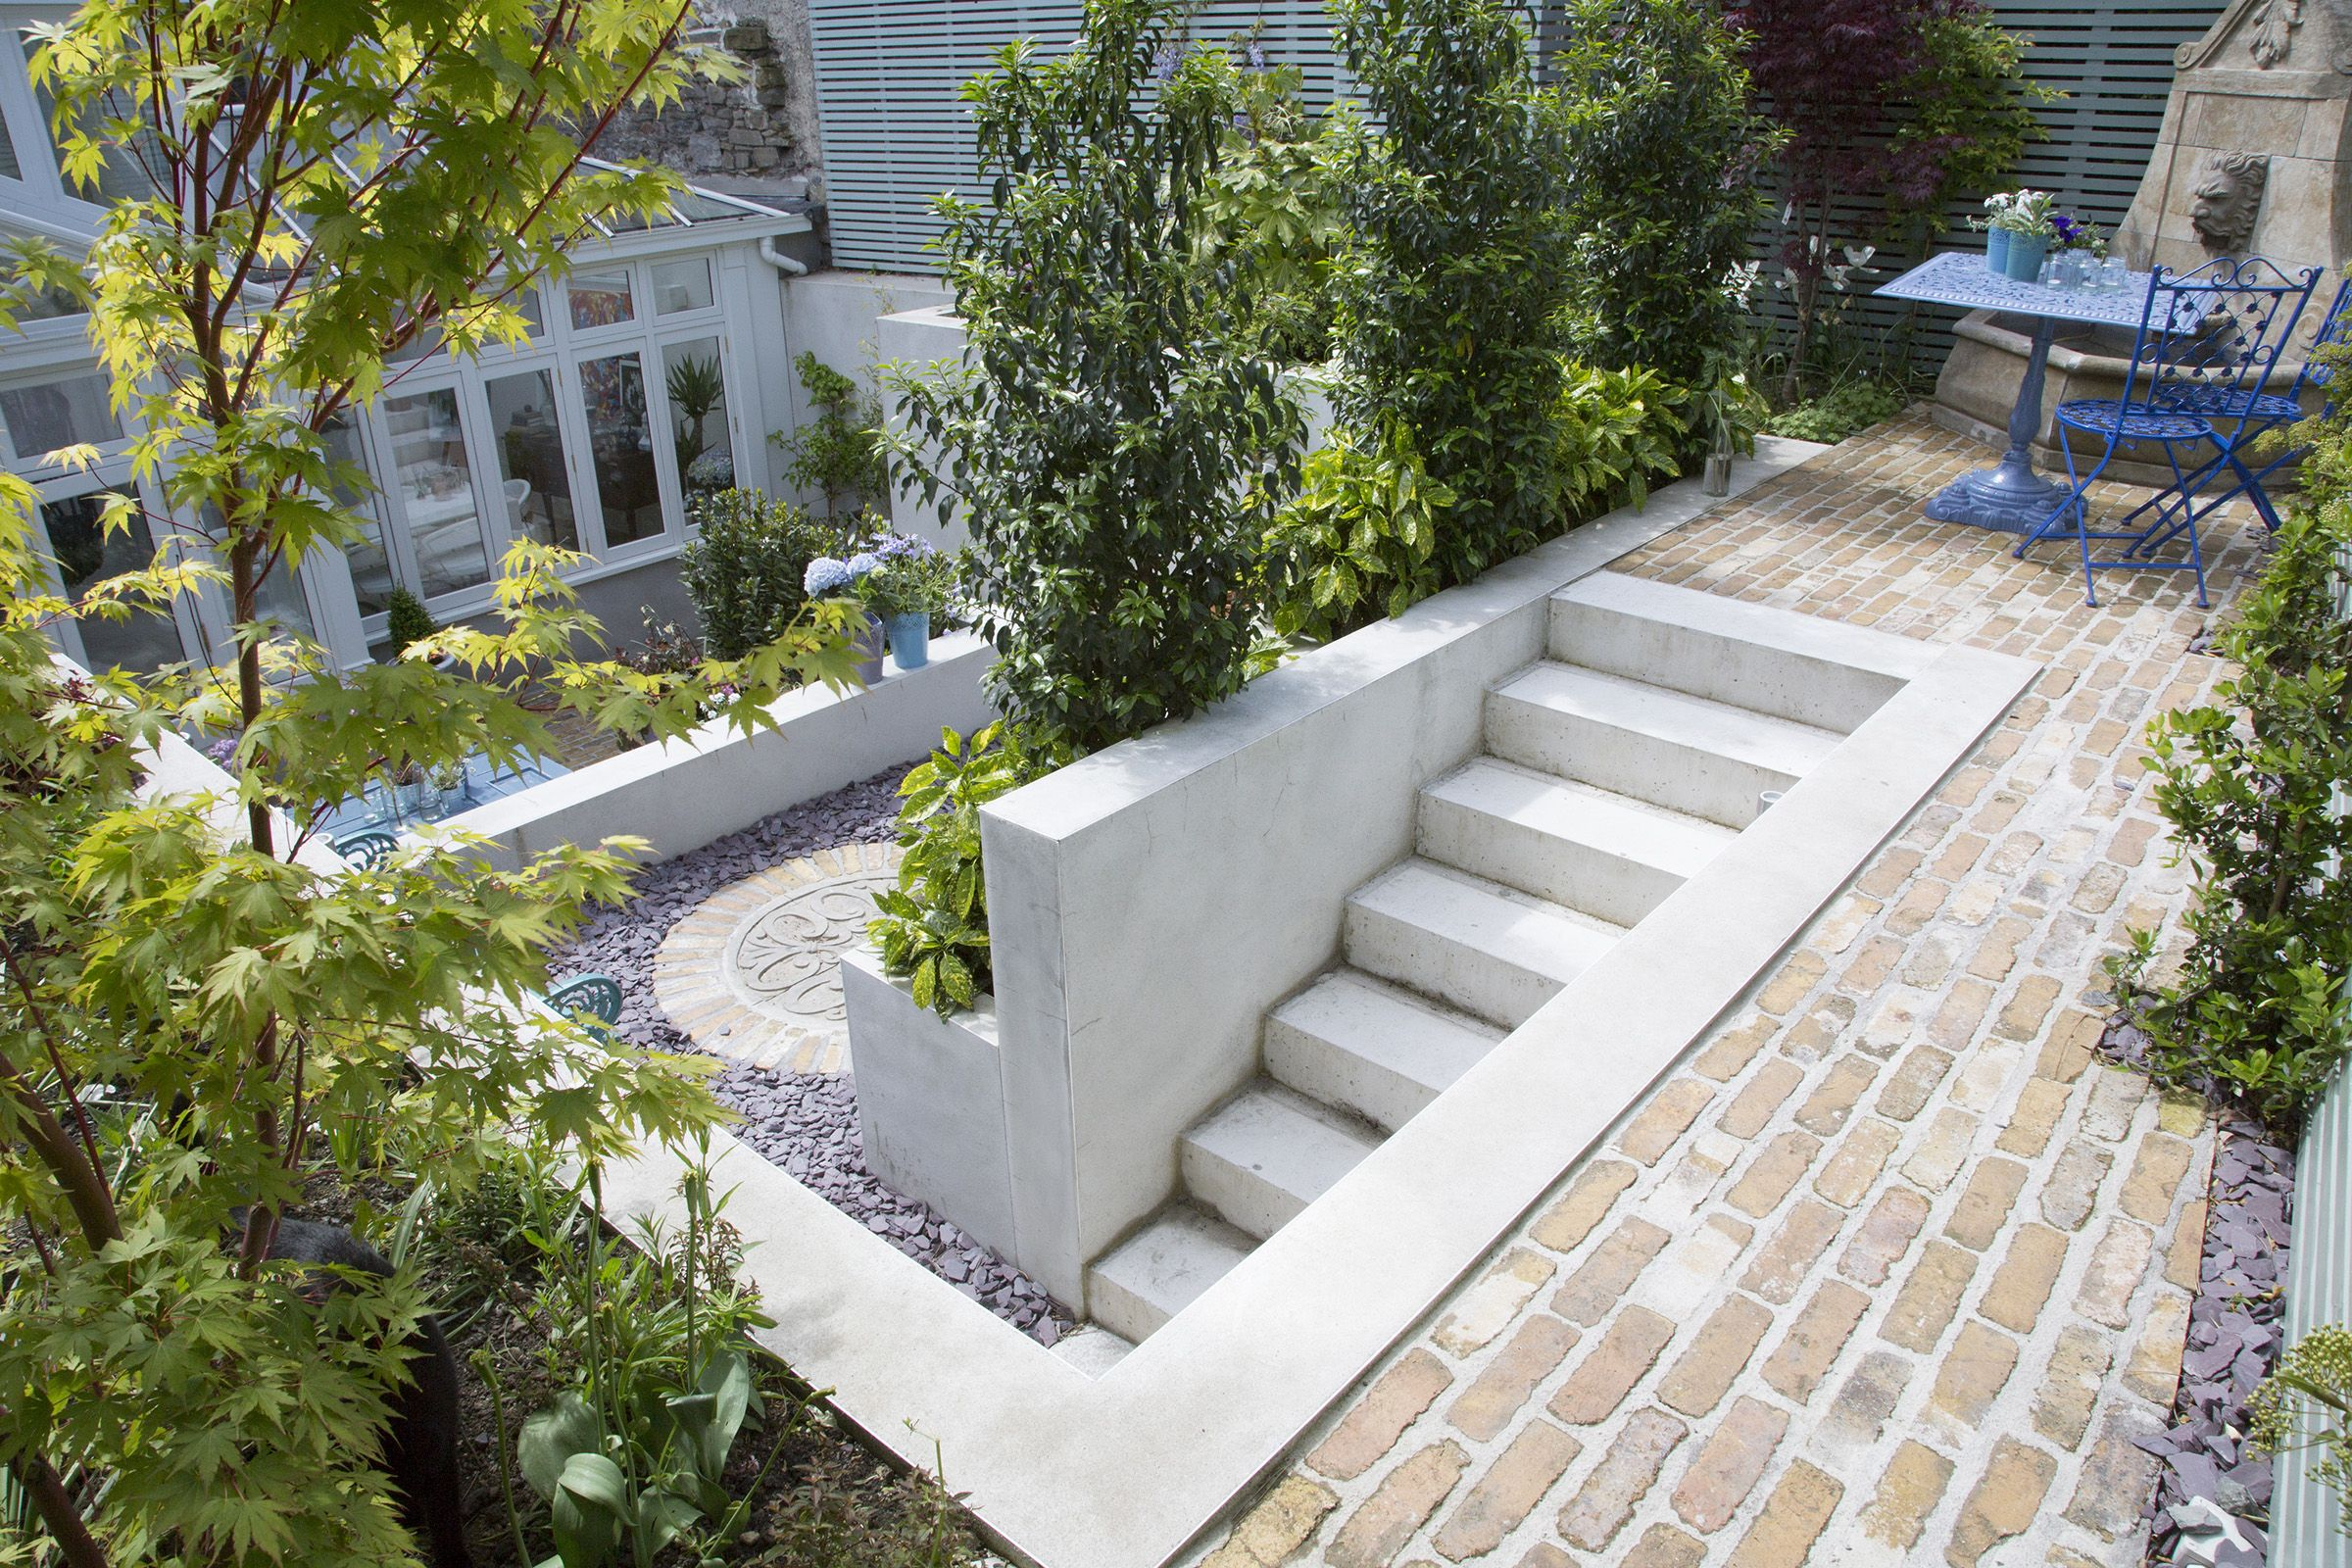 stepped three tiered garden design with salvaged bricks and poured